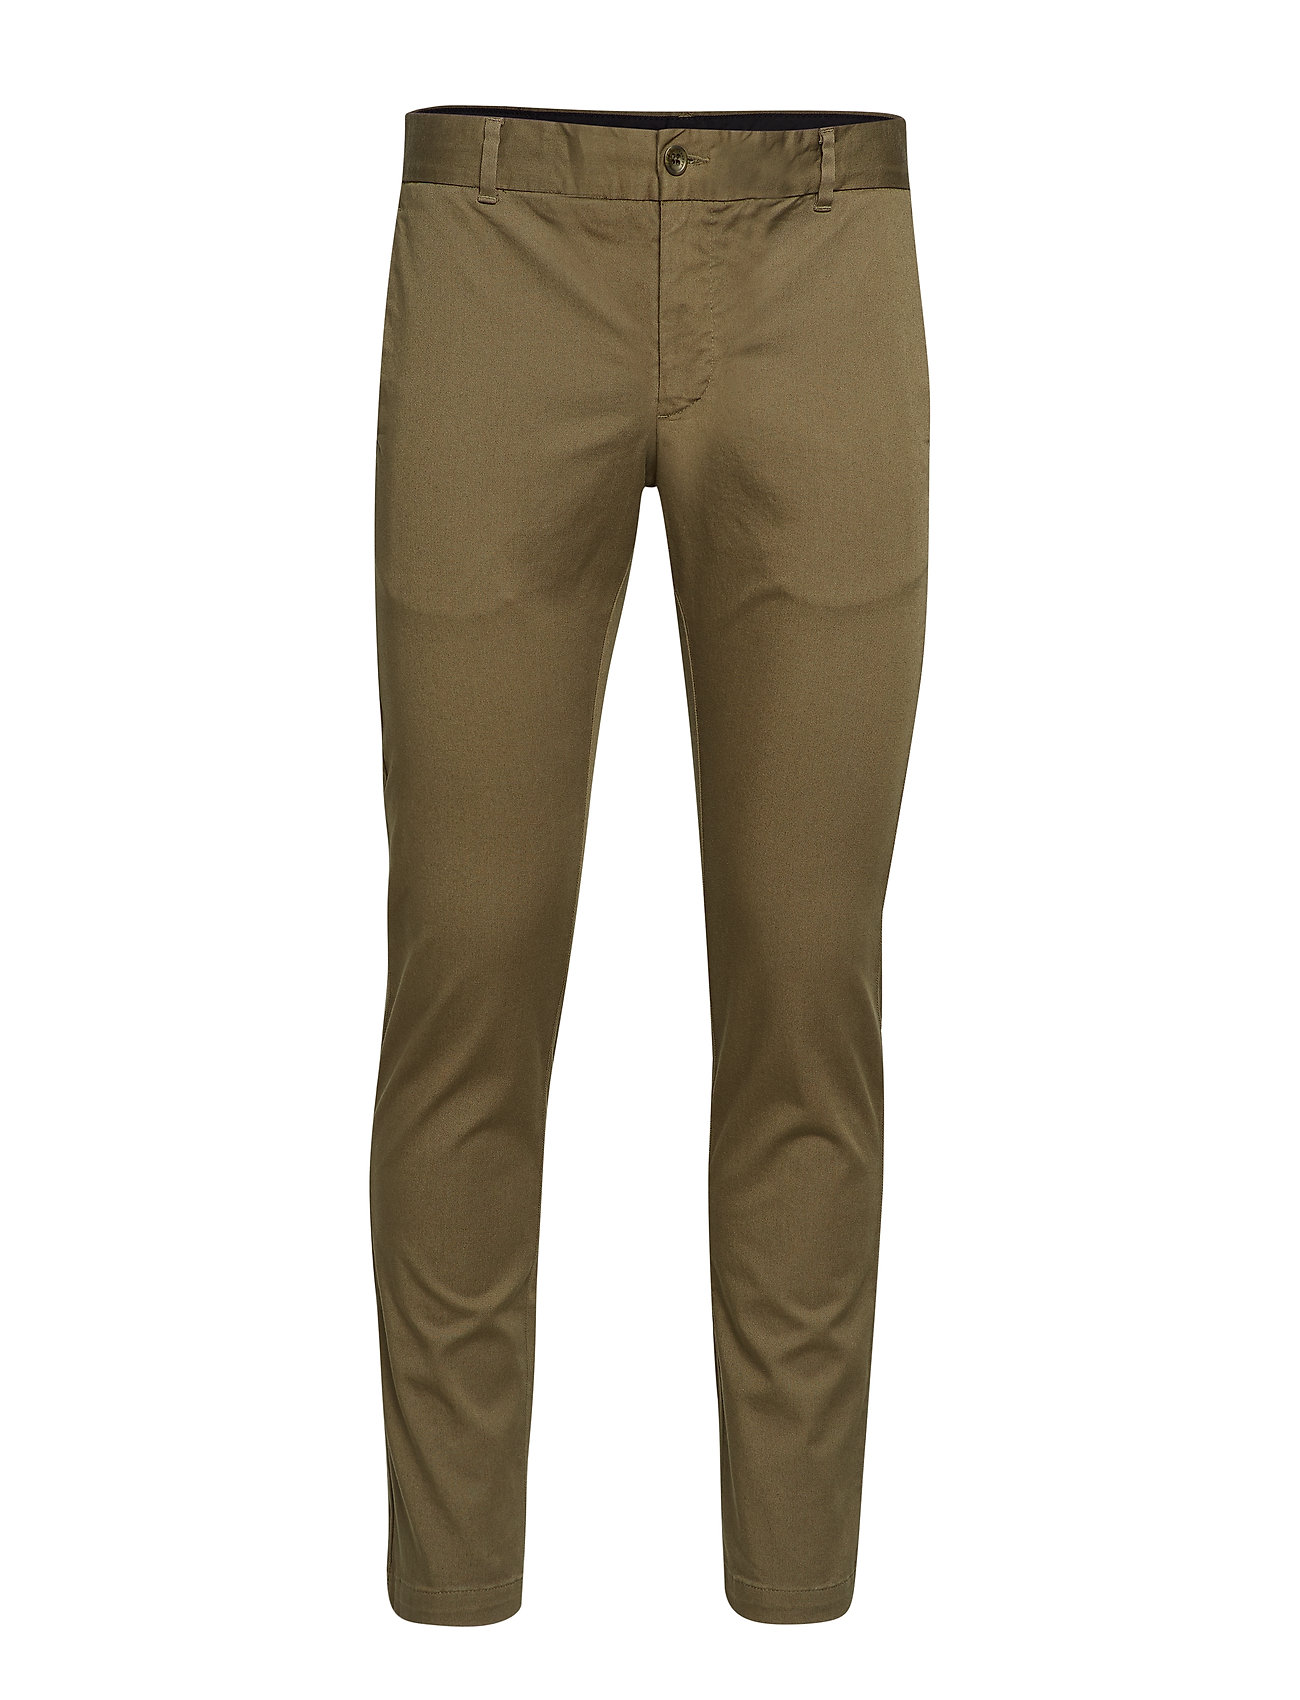 Peak Performance NASH CHINO - SHADE A